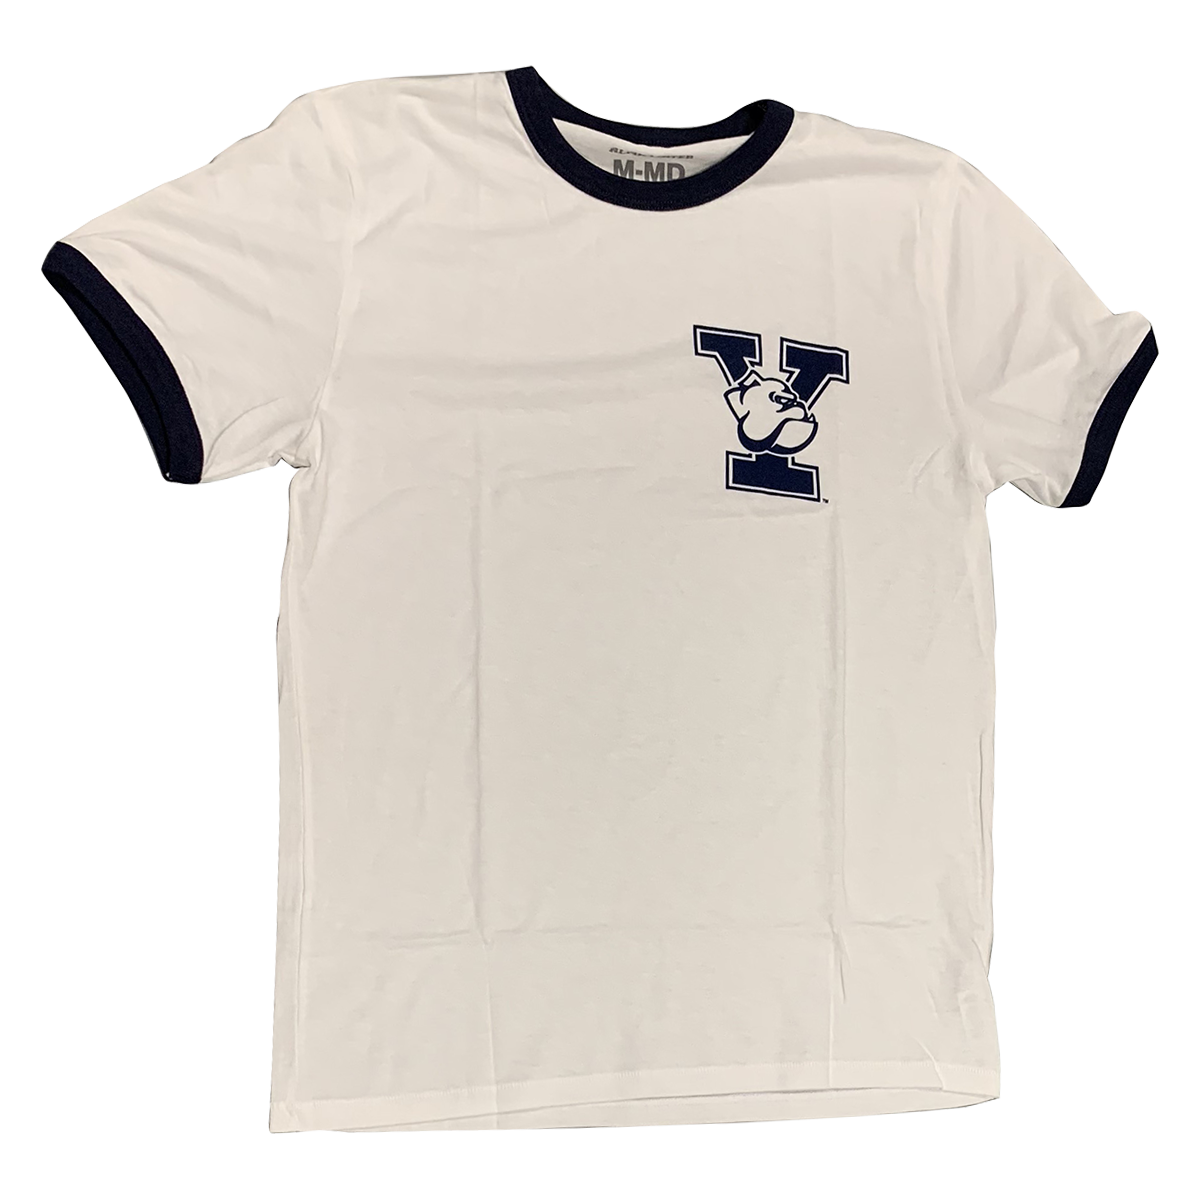 YALE UNIVERSITY Bulldogs Men's Ringer Tee